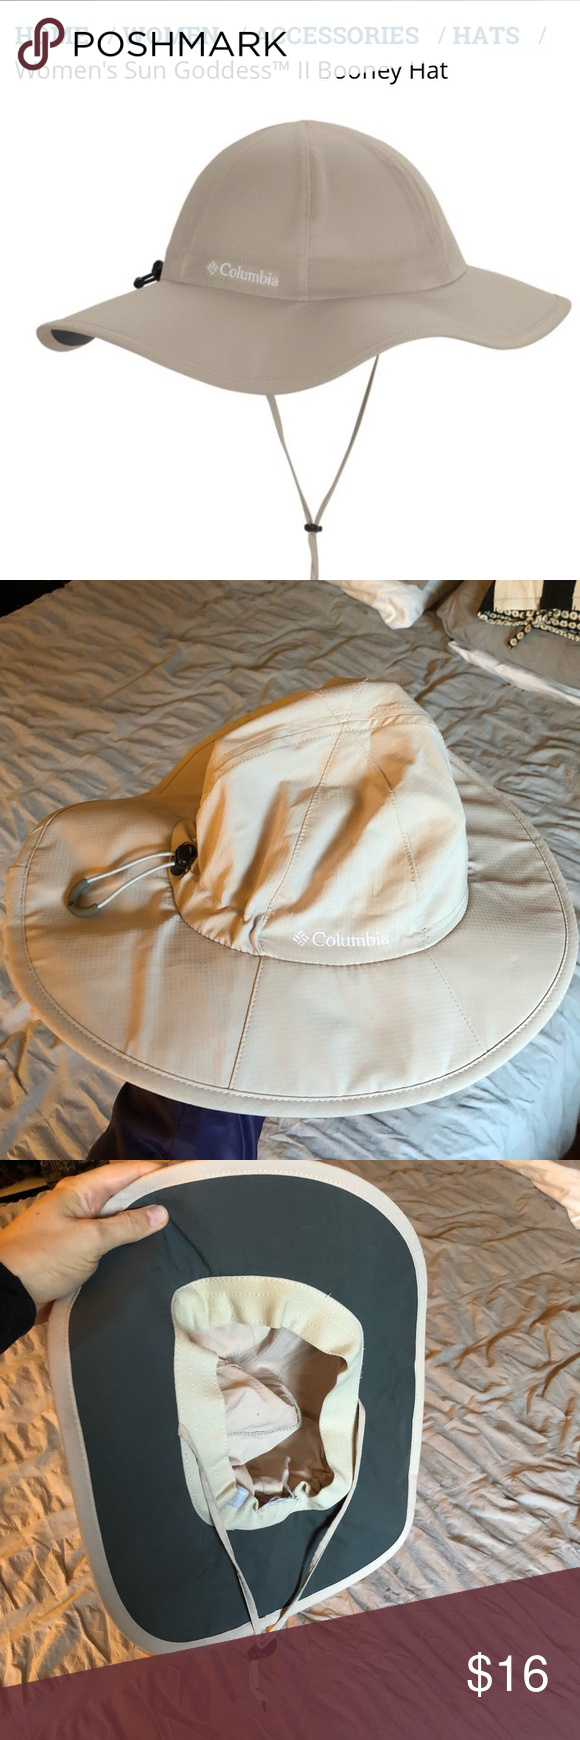 Columbia Sun Goddess II Booney UPF Hat Brand New Never wore this color  (Fossil) 5b97b8bb7c5c